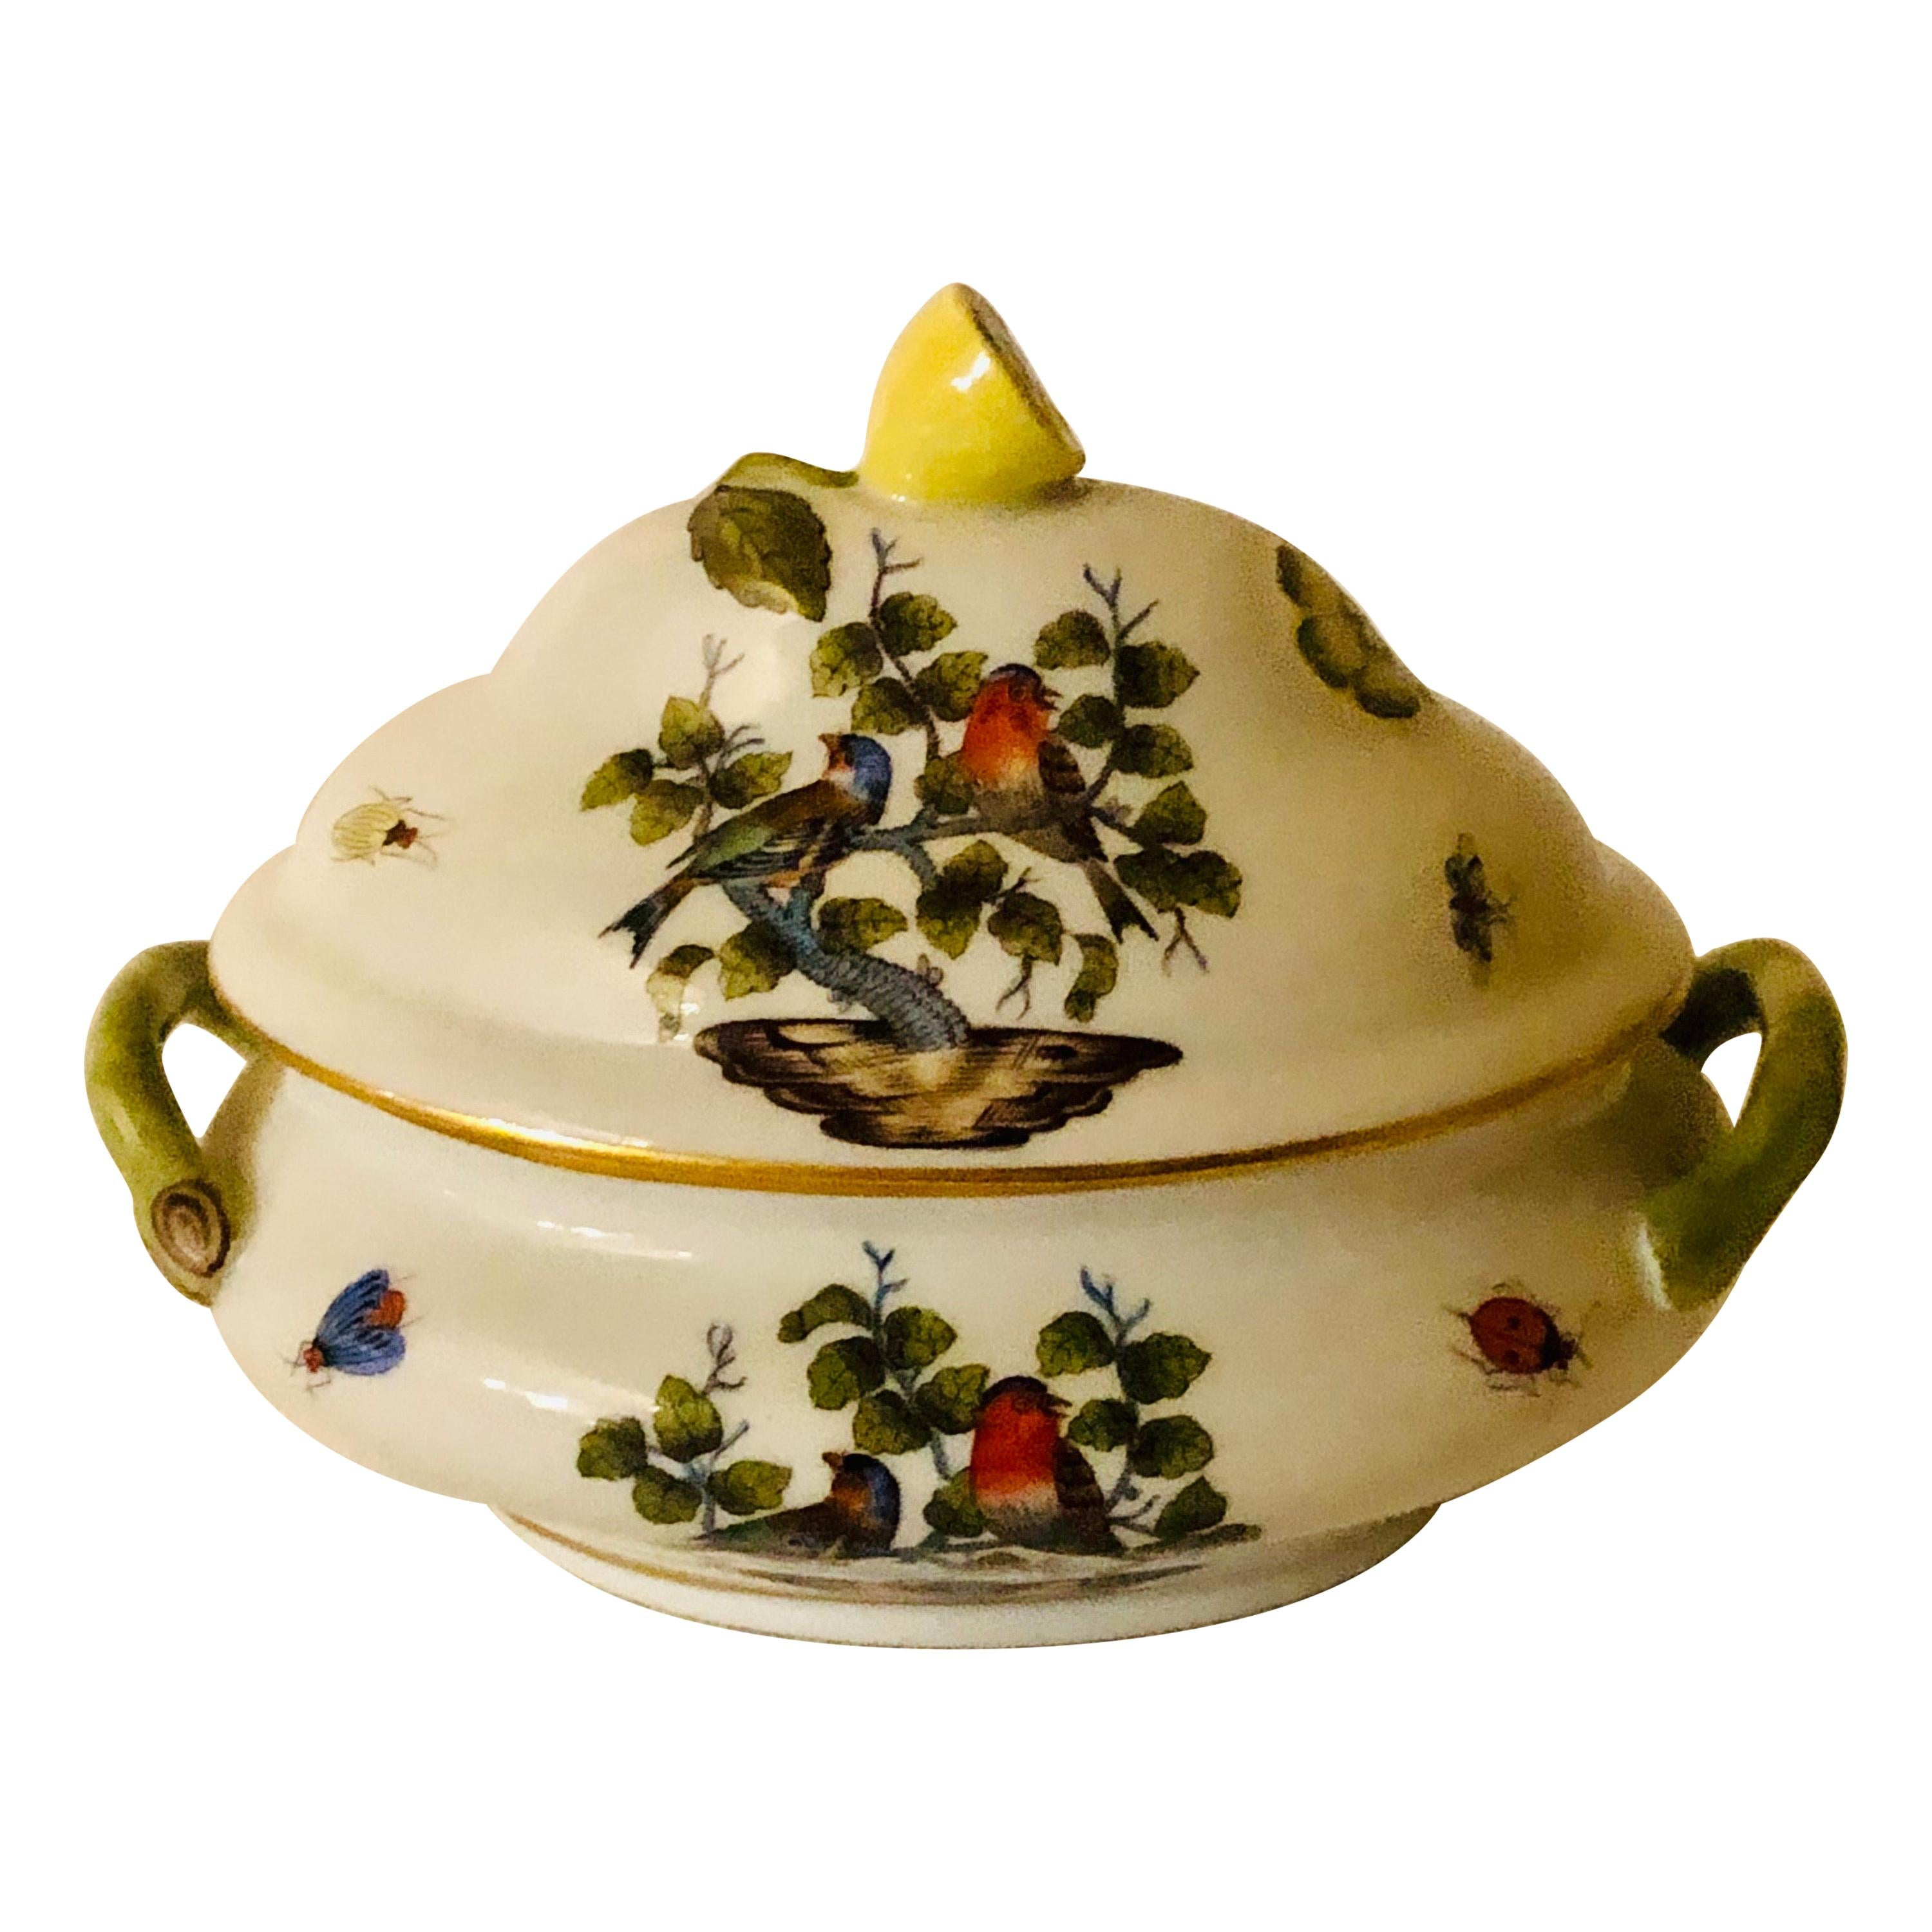 Miniature Antique Herend Rothschild Bird Tureen with Raised Lemon on The Cover